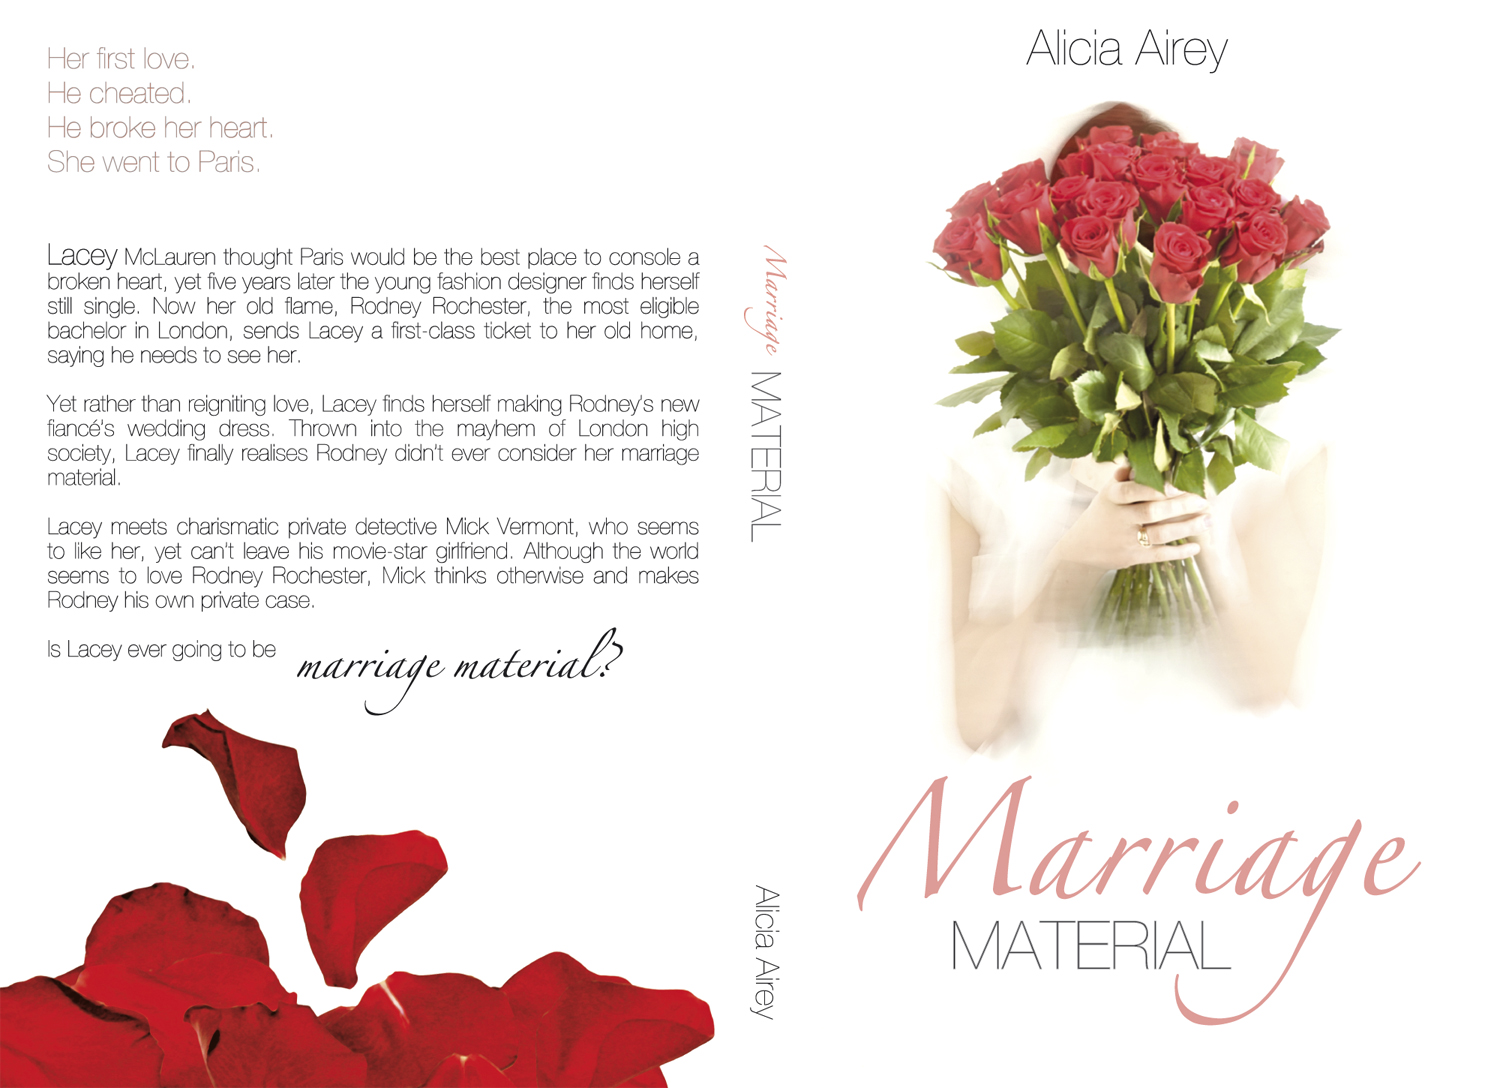 Book Cover Design With Flowers ~ Book cover design contests for chic